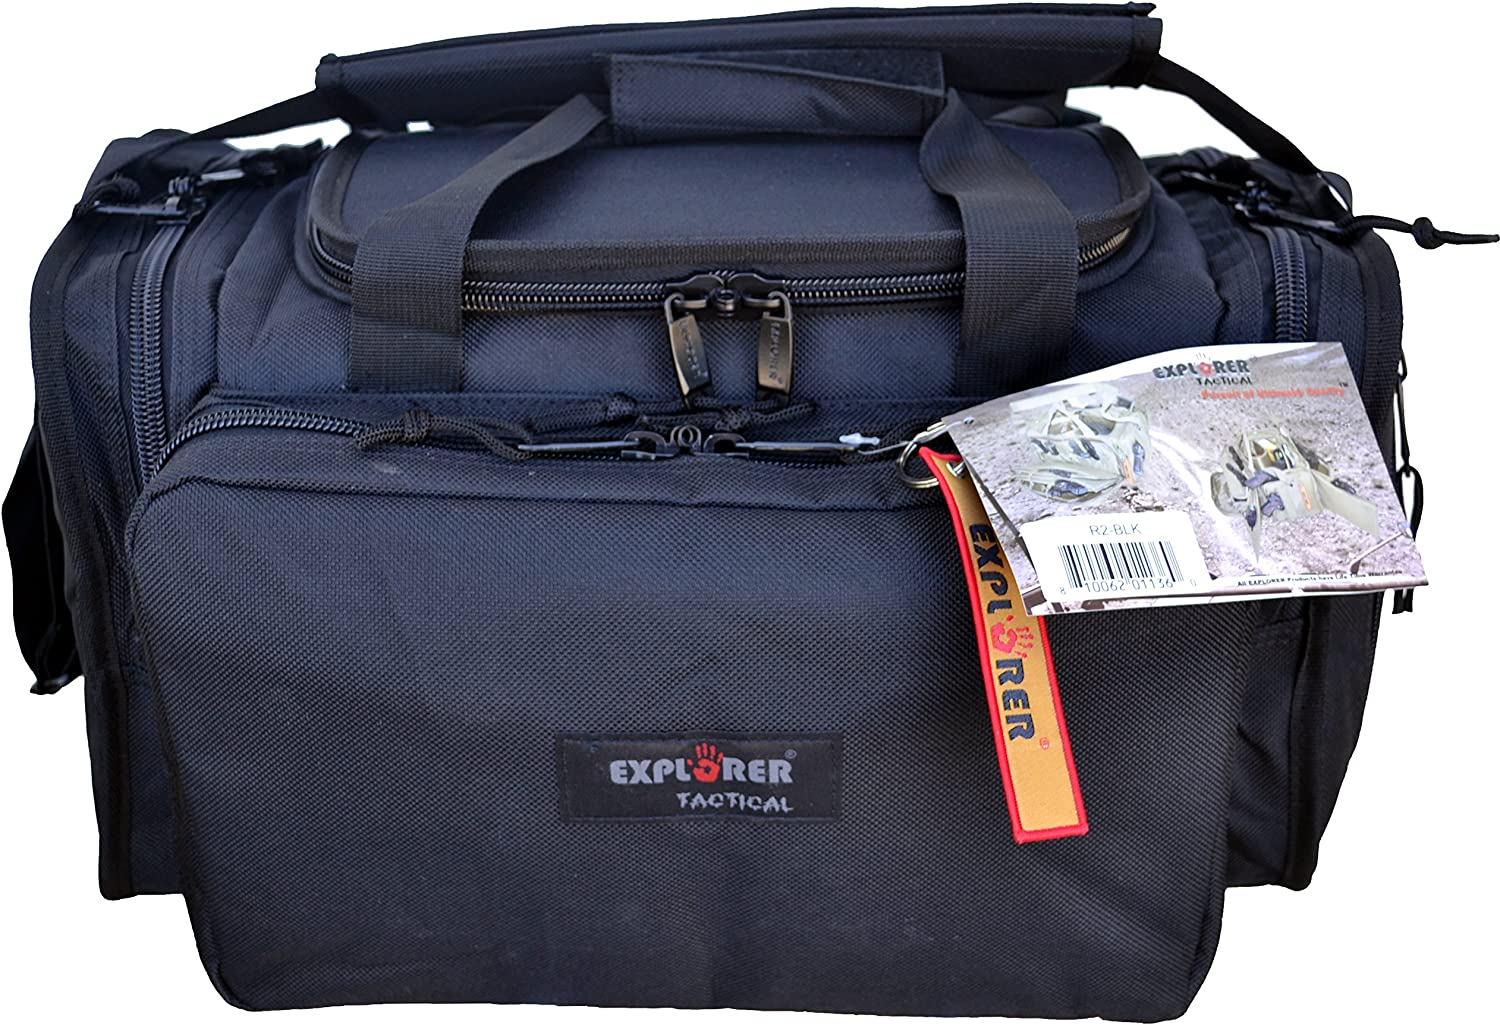 Photo of a range bag in blue color, one big front pocket with zipper closure with product patch at the center, a bag tag hanging from it.